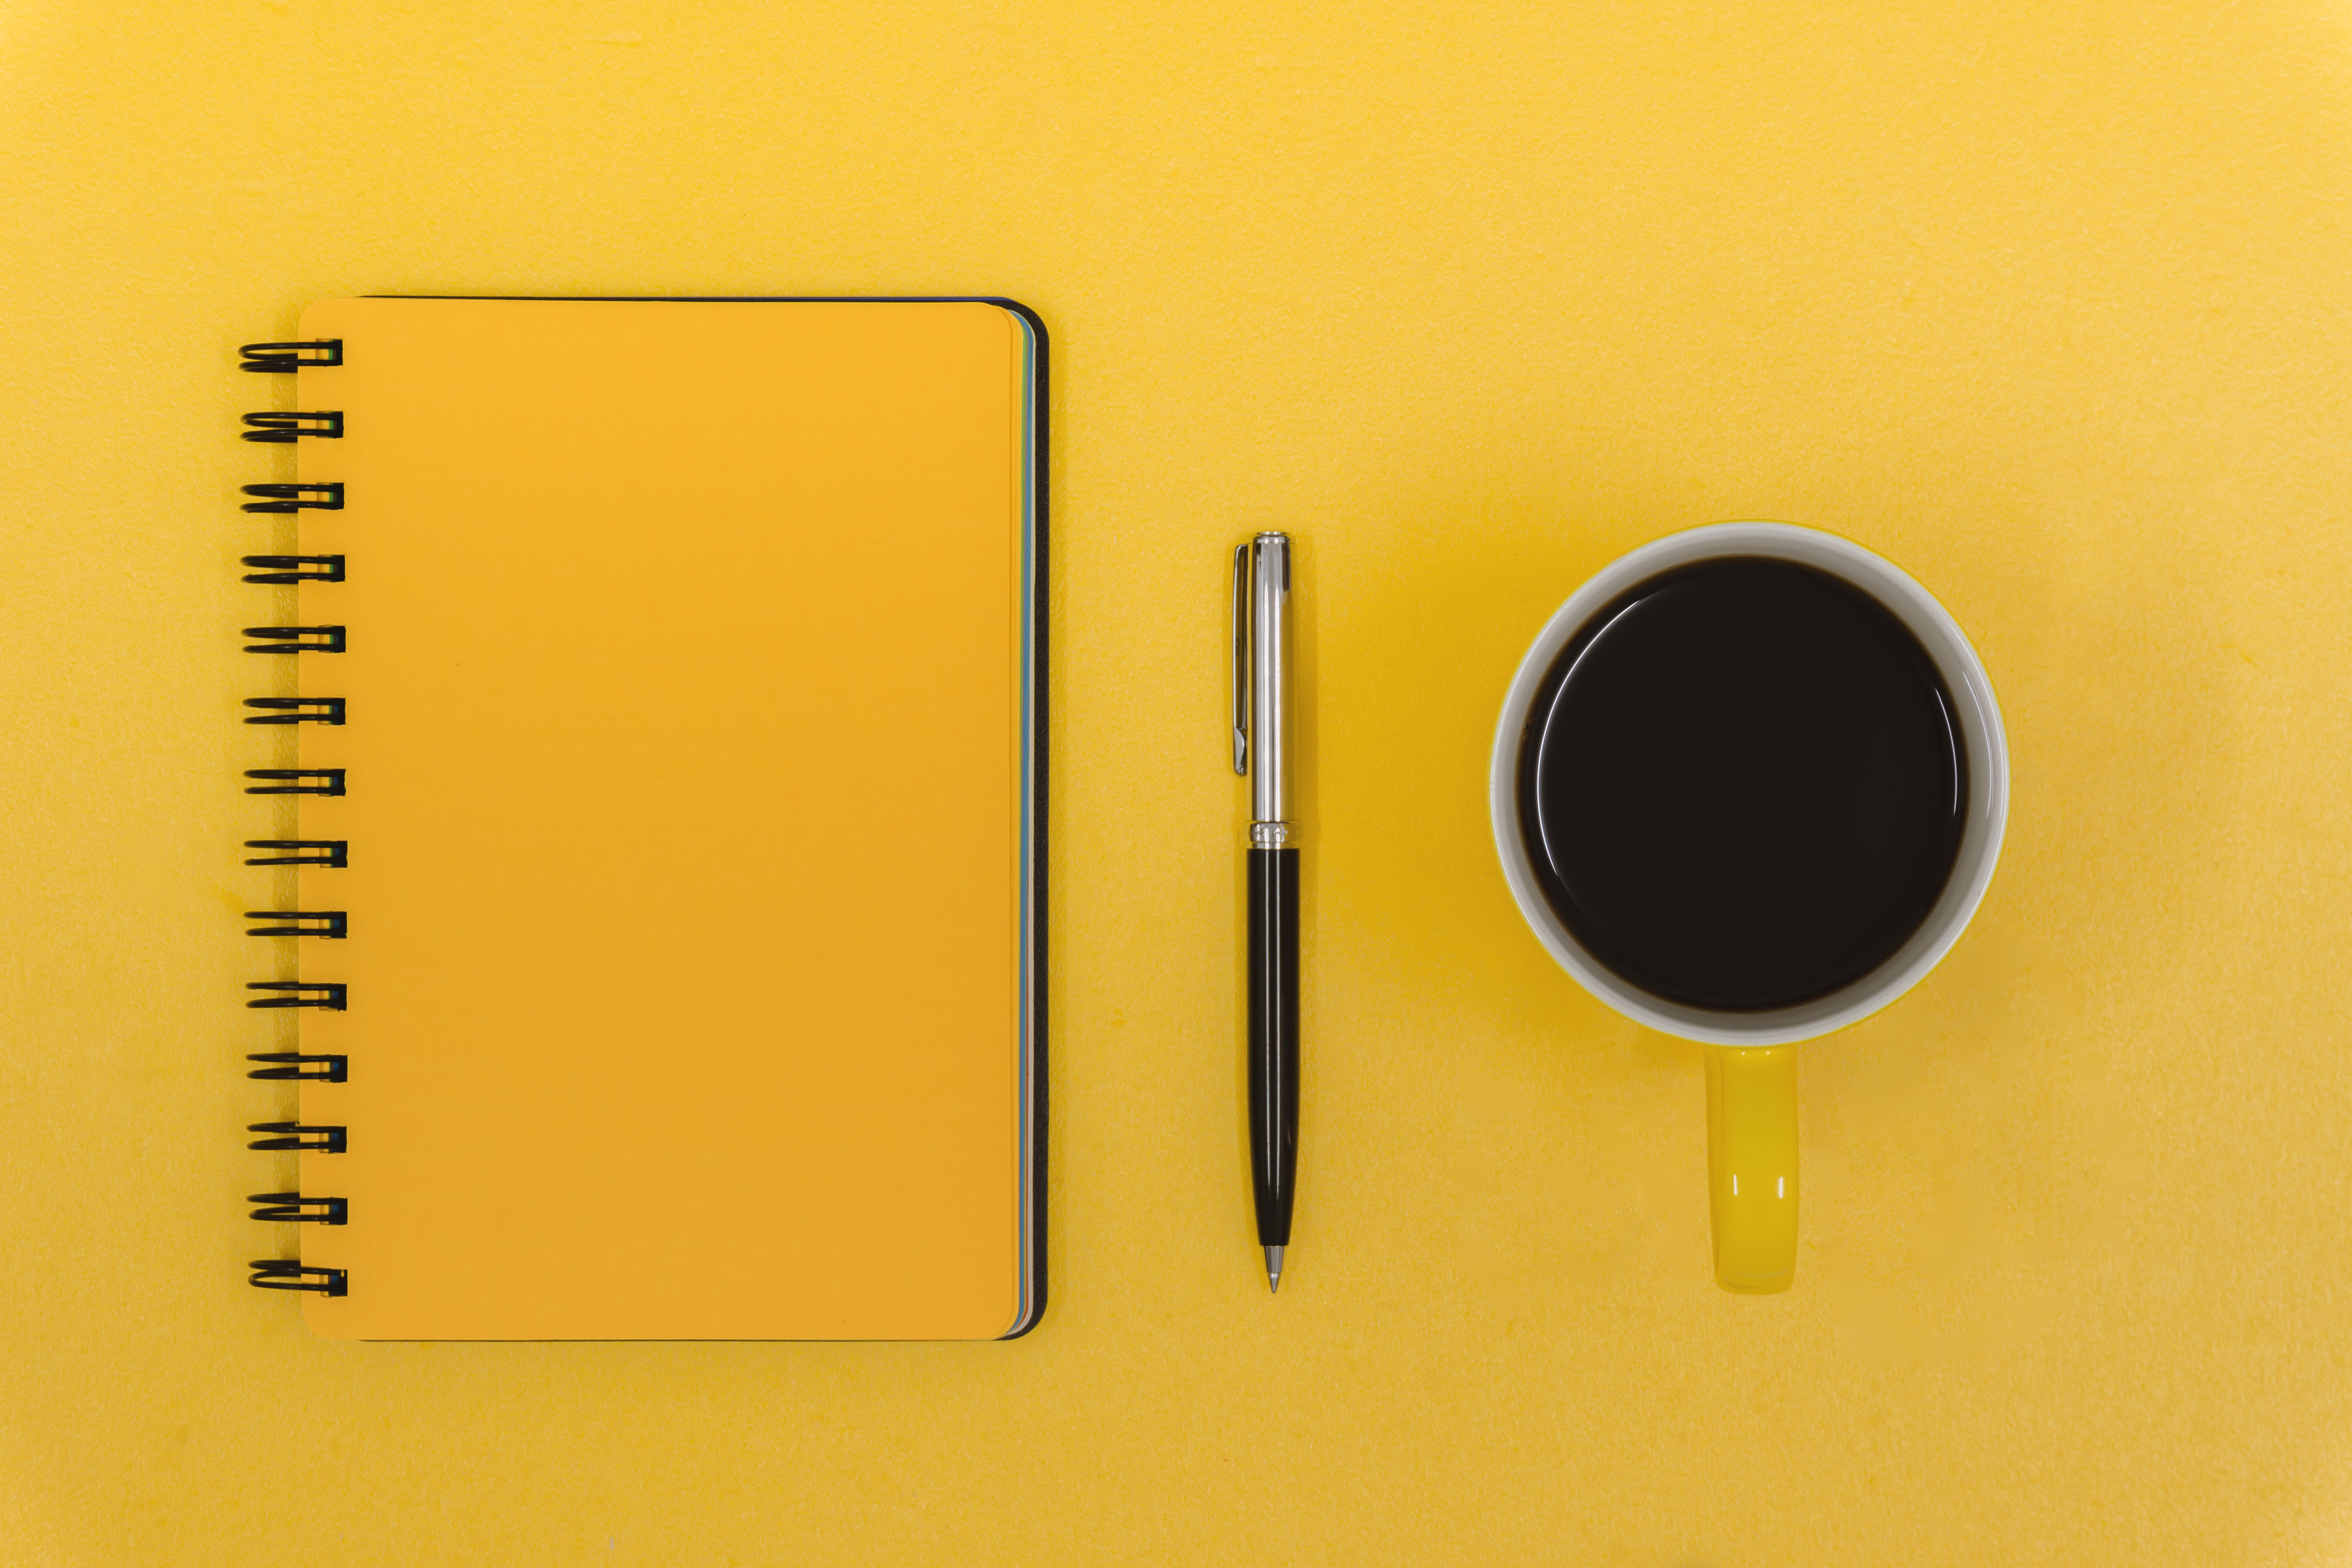 Notepad, Pen and Coffee Mug on Yellow Work Desk